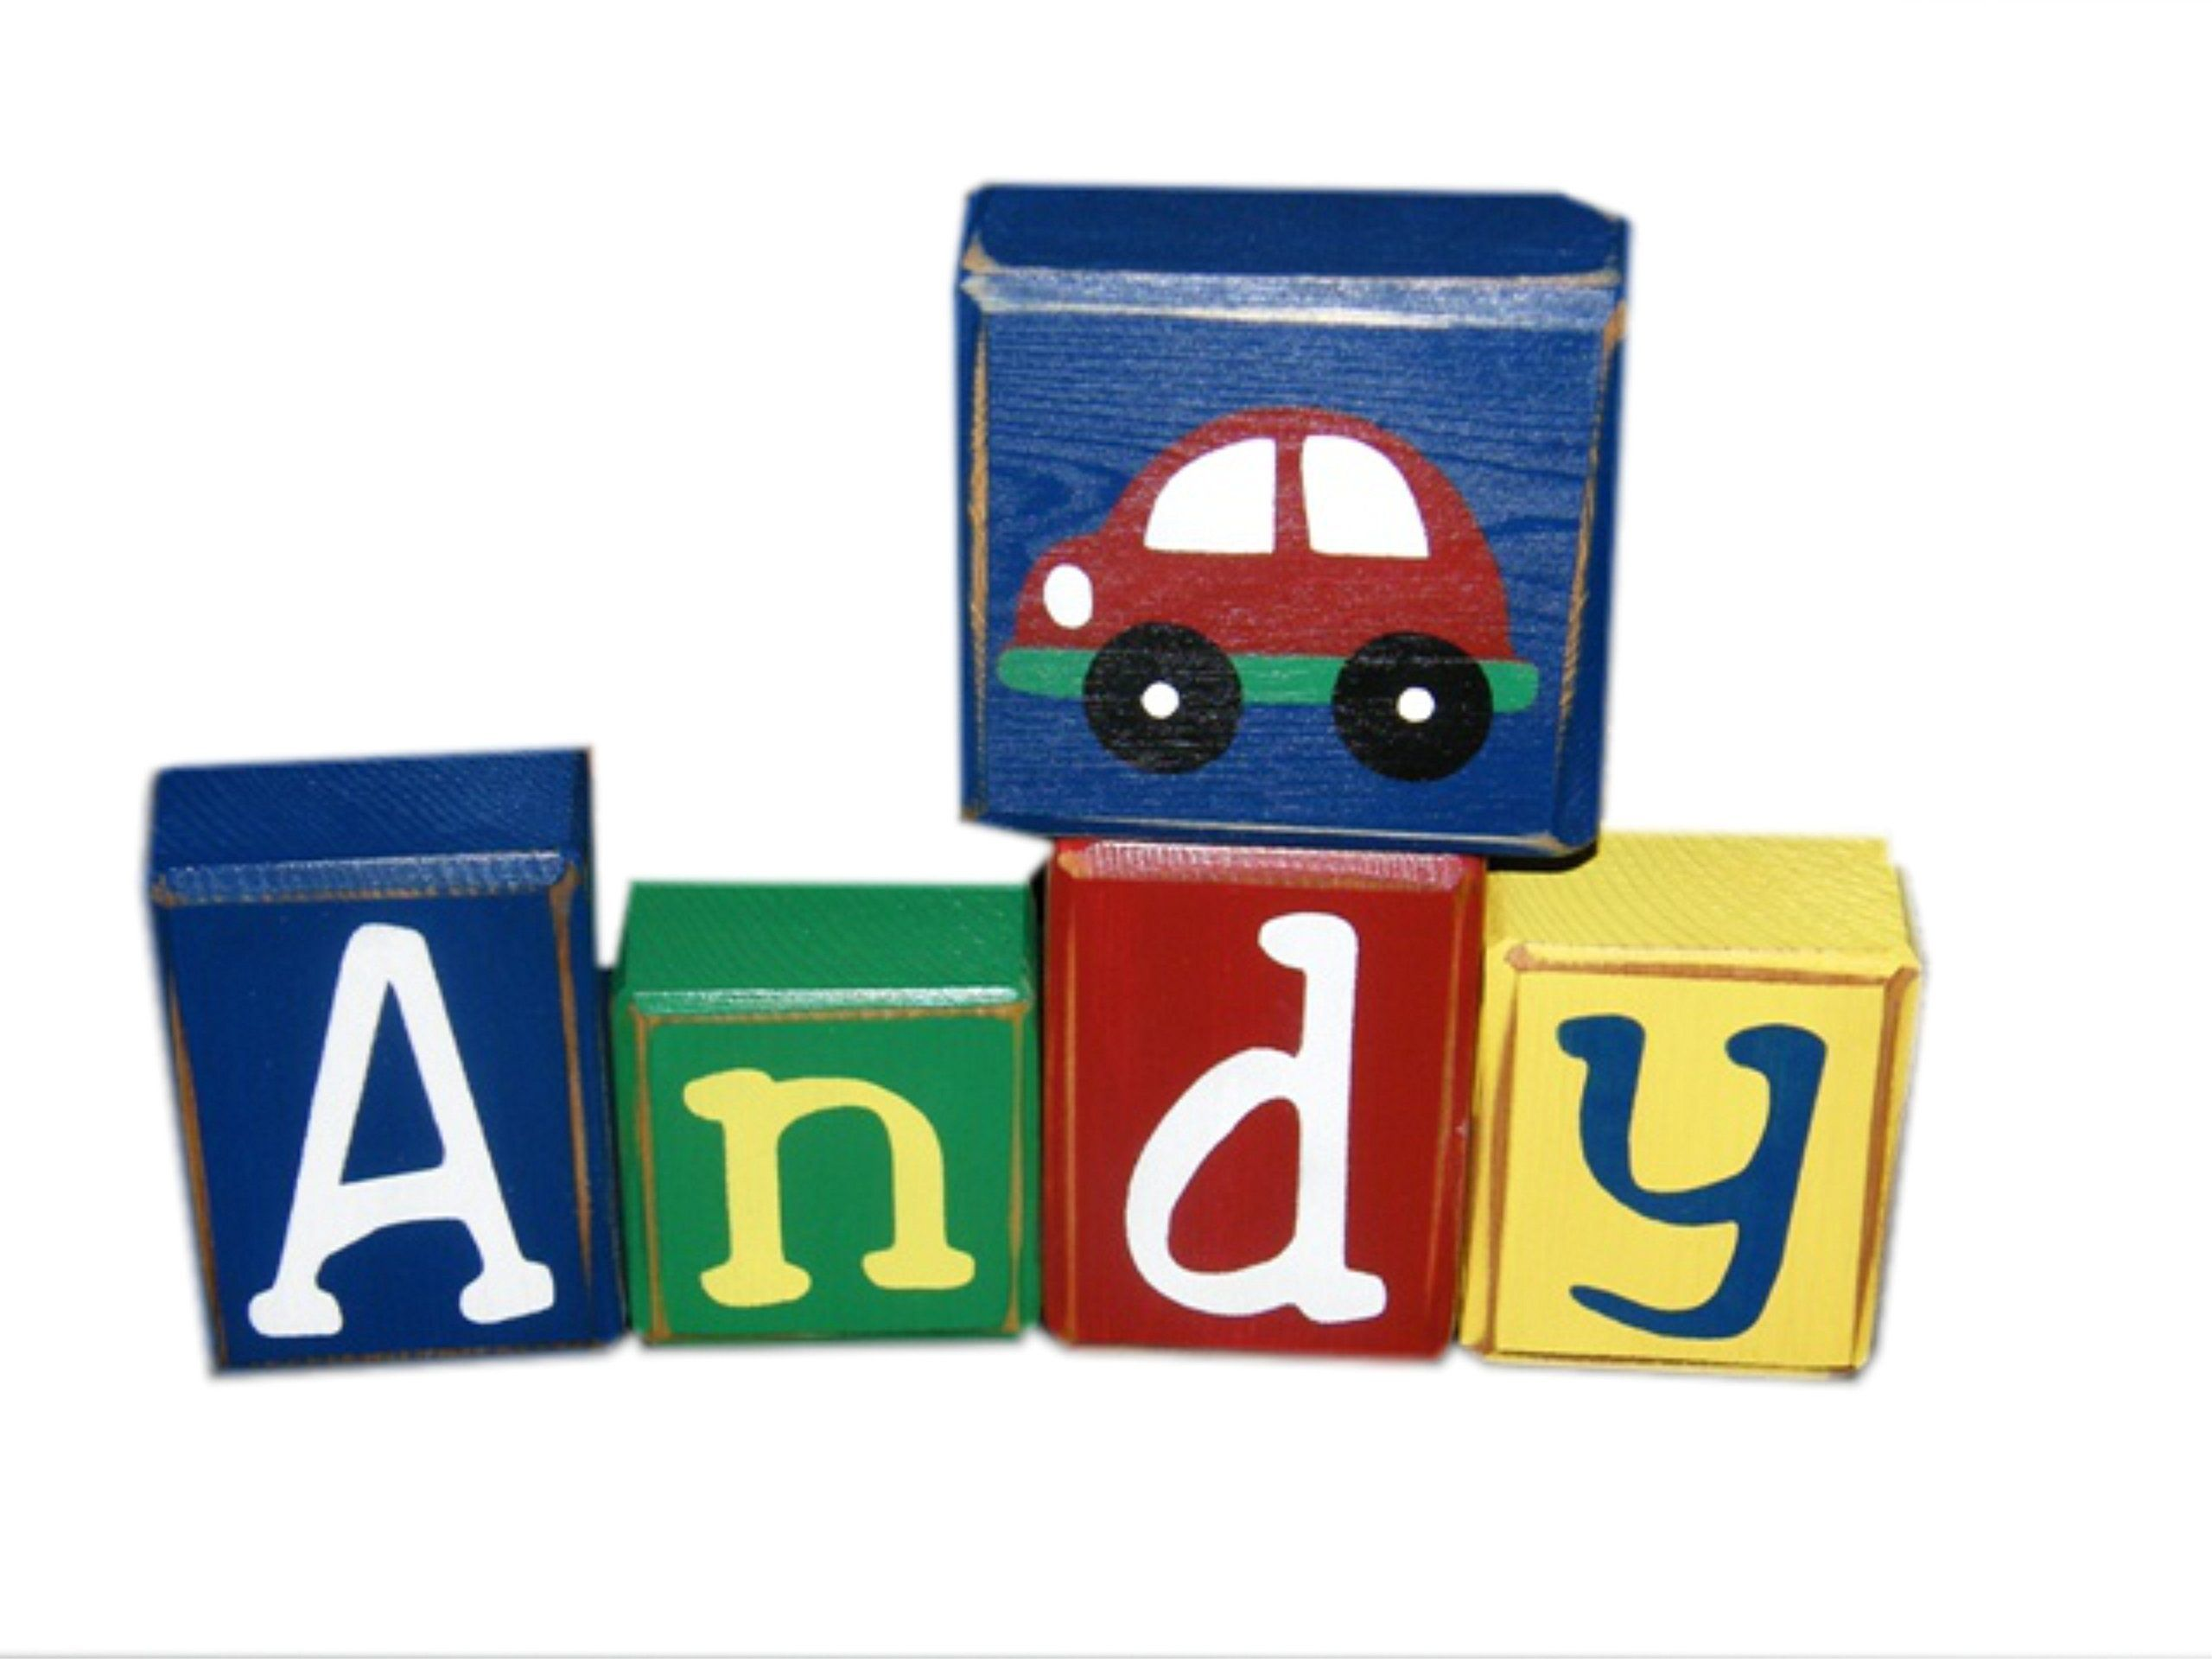 Boy Name Blocks - Car - Transportation Theme - Custom Letter Blocks - Boy Birthday Gift - Wooden Sign - Wooden Custom Sign. Doesn't this set POP? Price listed is PER block. These are individual letter blocks (not stuck together). You are welcome to customize as much as you wish! Just include the # of blocks needed, along with your special requests (colors/font/design) in the checkout options. I can also match bedding. Colors Shown: Navy Blue, Kelly Green, Red and Bright Yellow Image block...